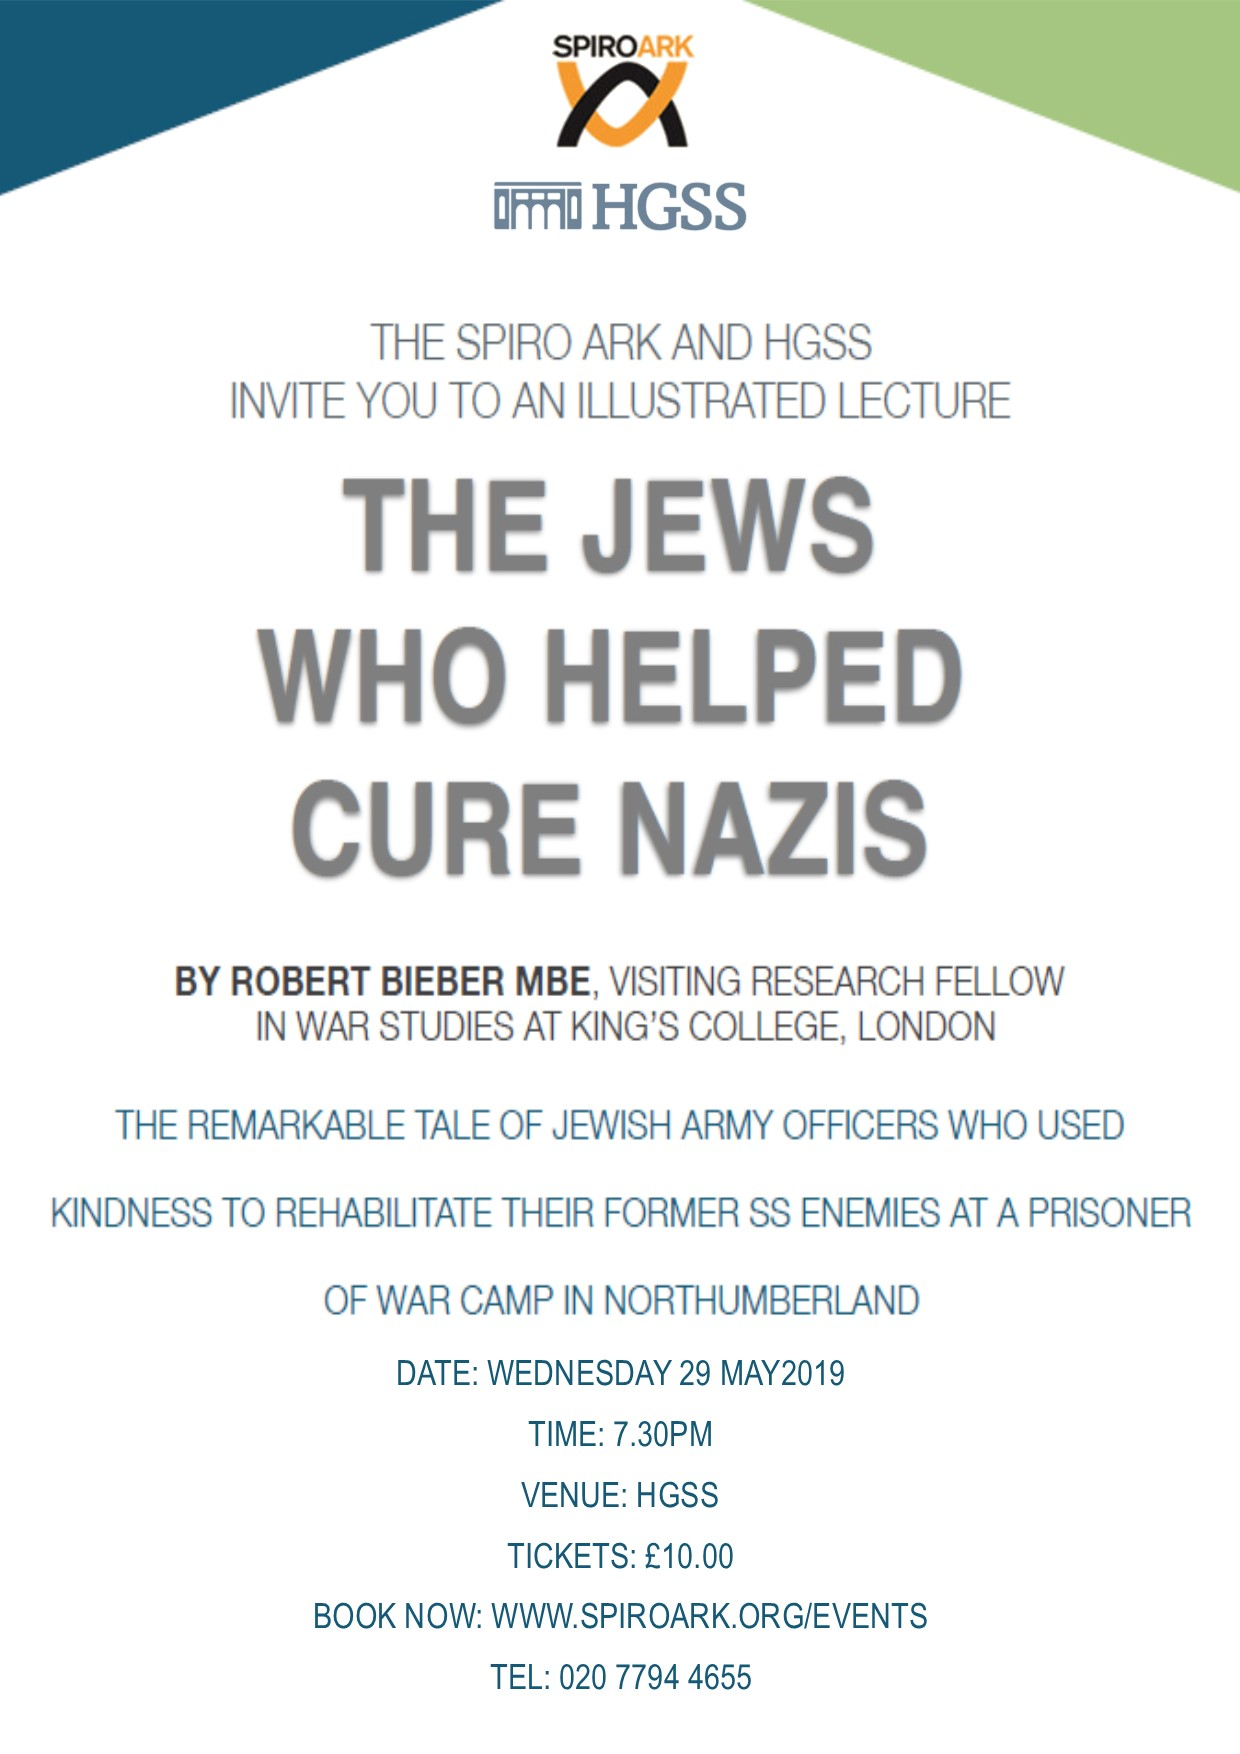 Spiro Ark - The Jews who helped cure Nazis @ The Landy Gallery